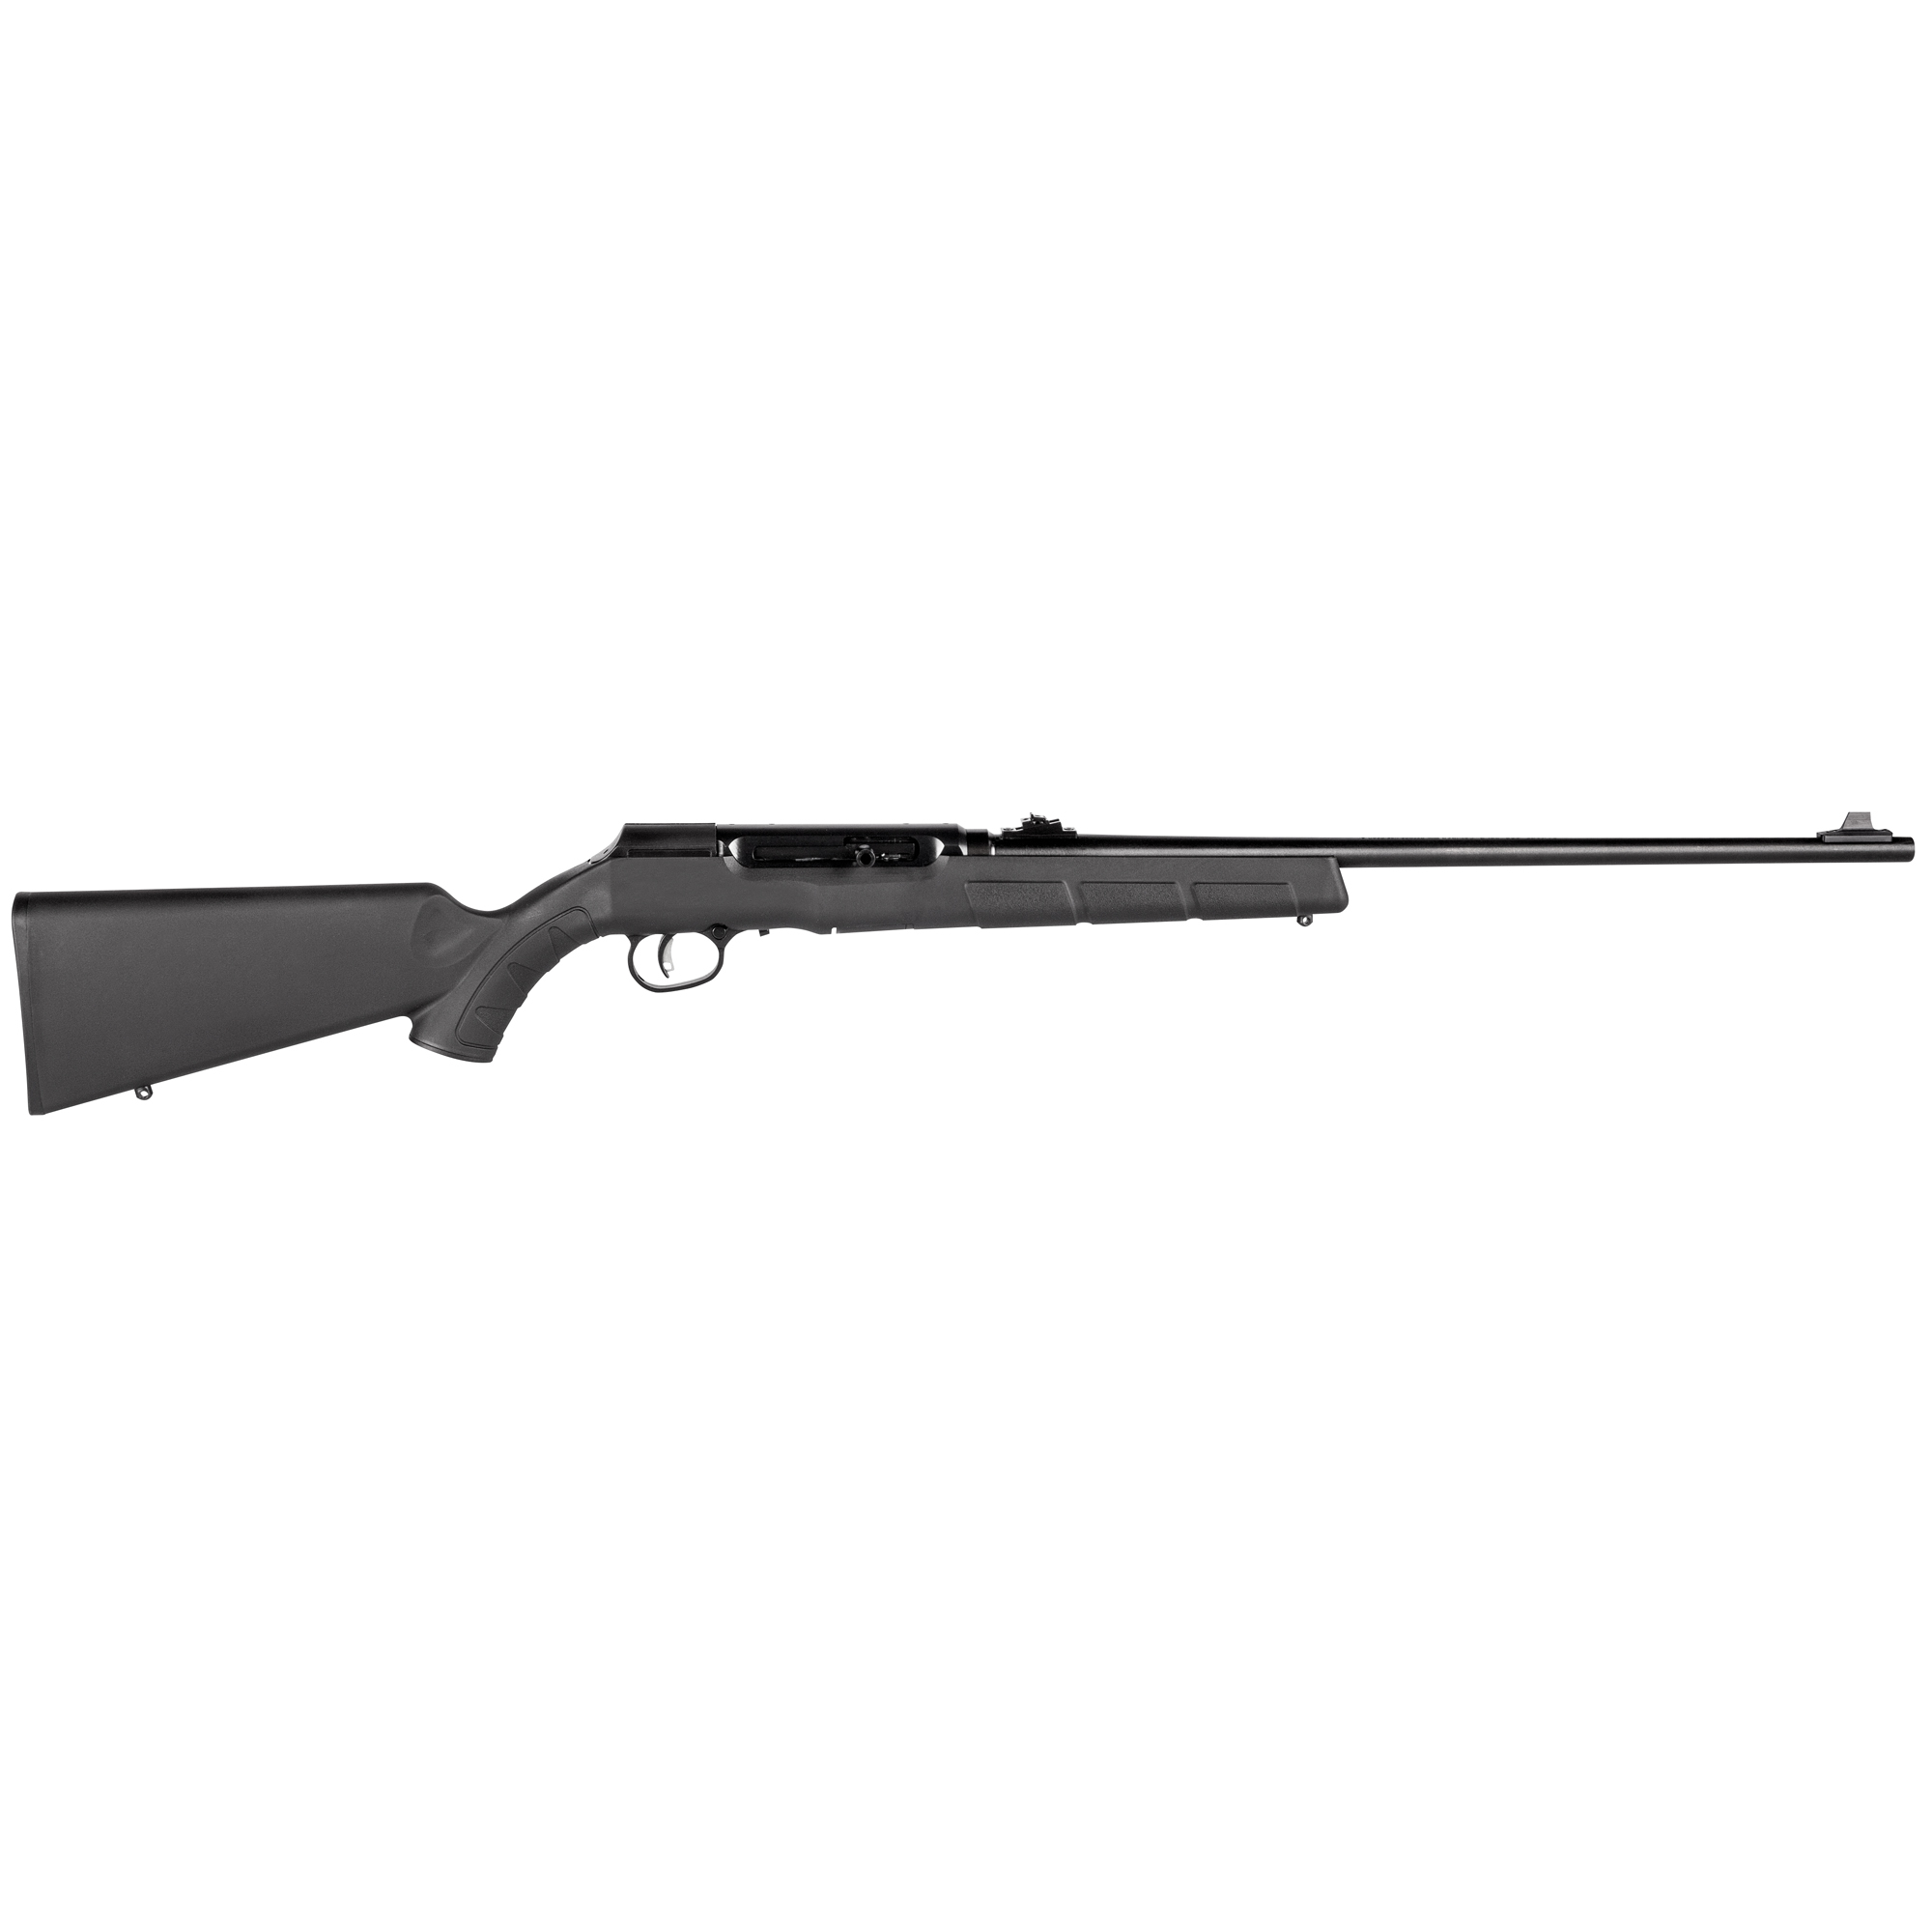 "Accuracy and adrenaline are woven into every aspect of the Savage(R) A22. The semi-automatic 22 Long Rifle is powered by a straight-blowback action and uses the same thread-in headspace system as the centerfire rifles. It has a 10-round rotary magazine"" a lightweight aluminum receiver and the game-changing AccuTrigger(TM)"" which allows for a crisp"" user-adjustable trigger pull."